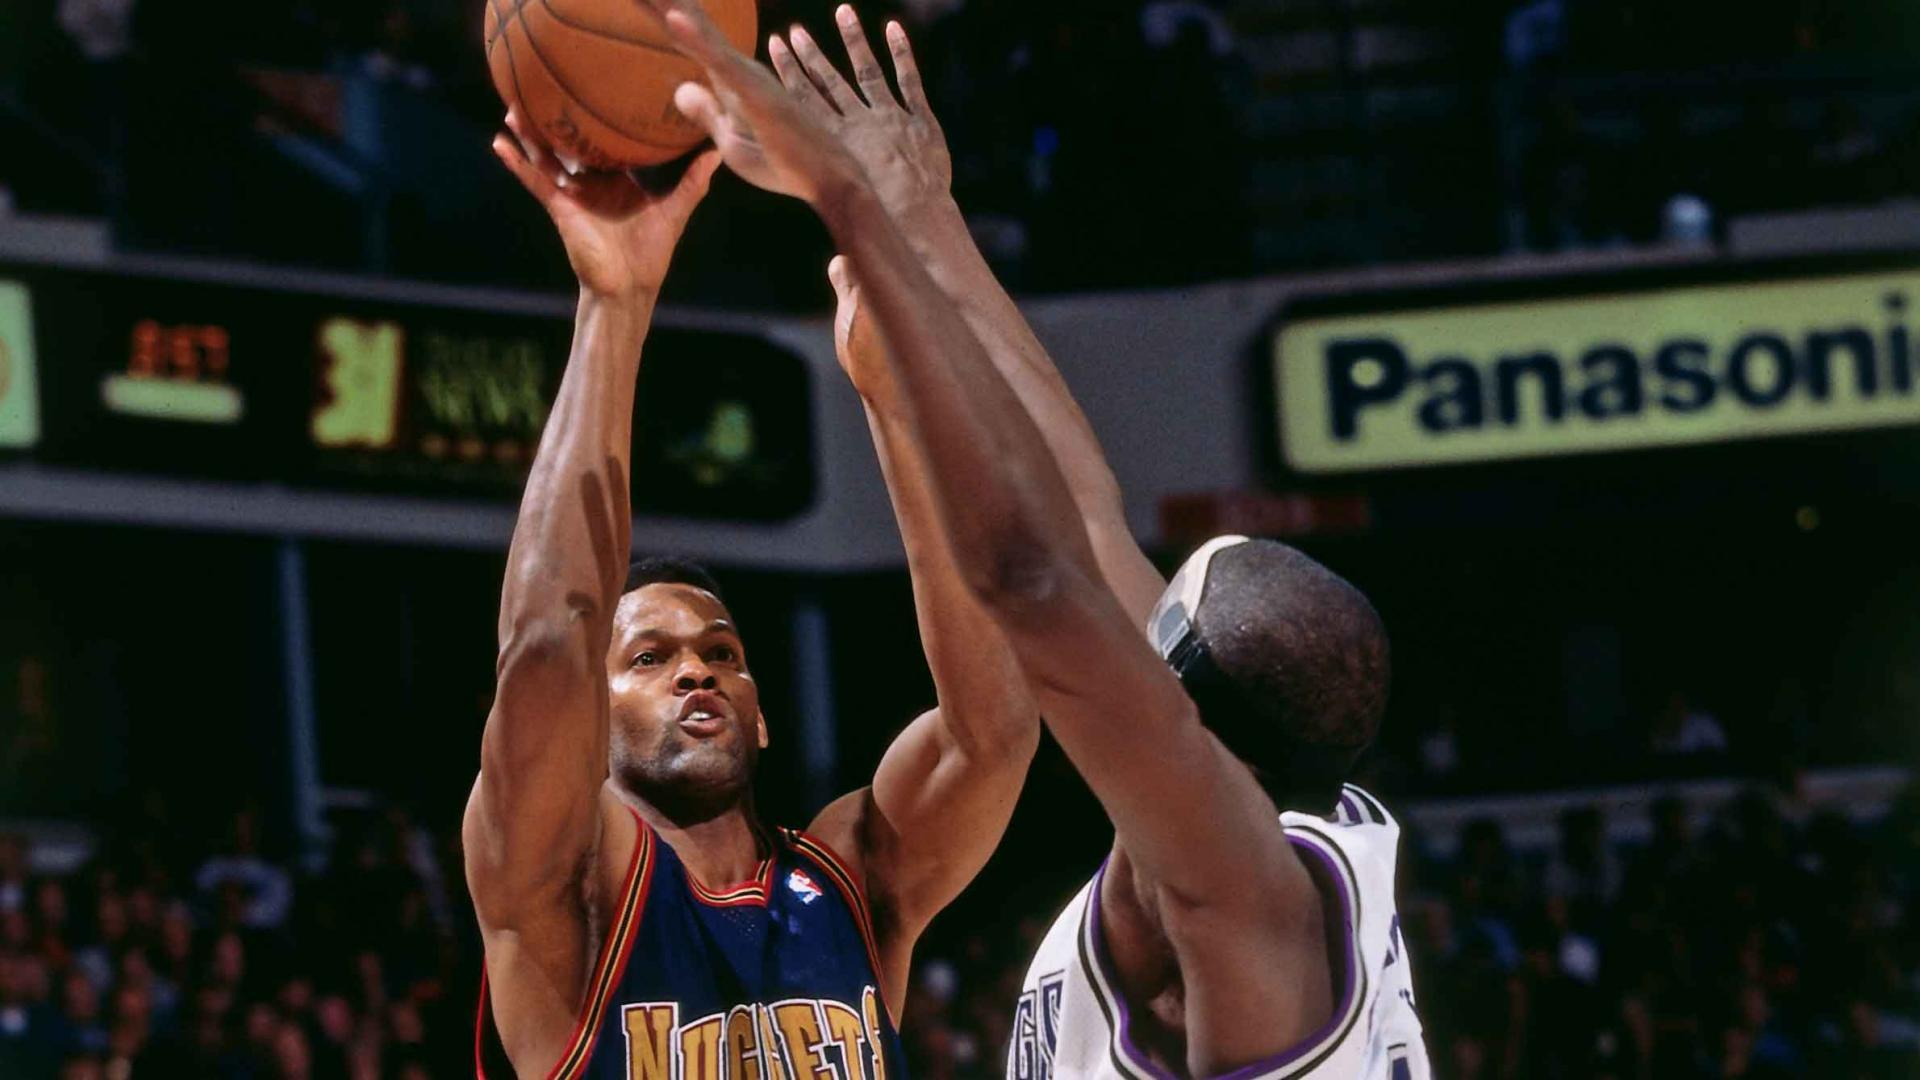 Legendary Moments In NBA History: Dale Ellis becomes first player to reach 1,200 career 3-pointers